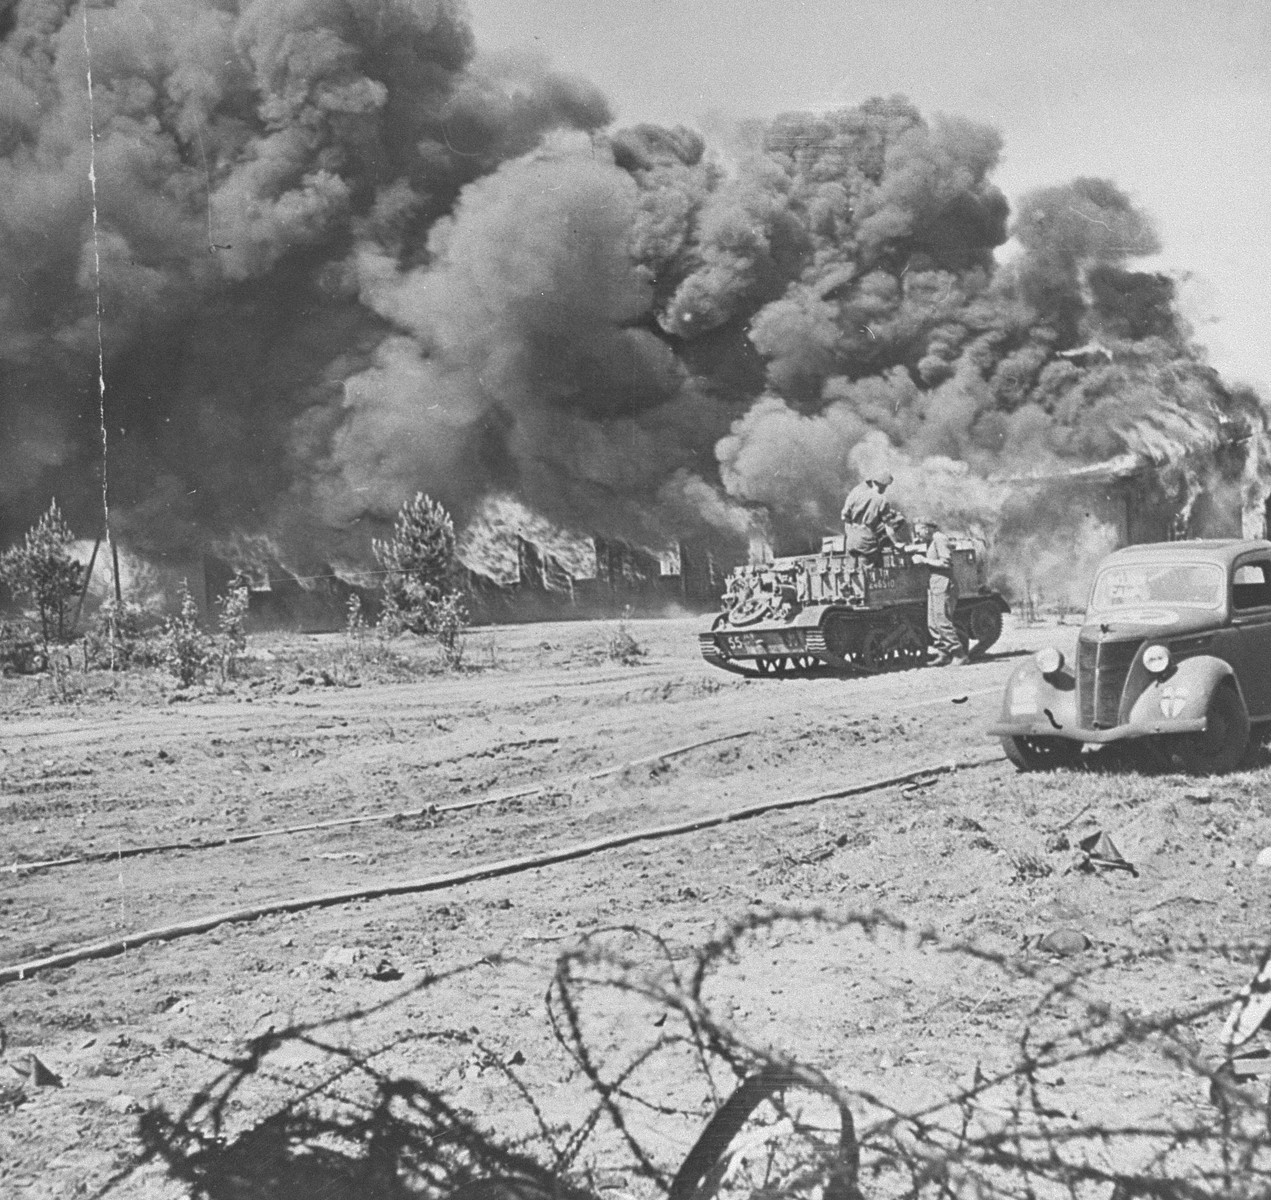 British troops destroy camp no. 1 in Bergen-Belsen.